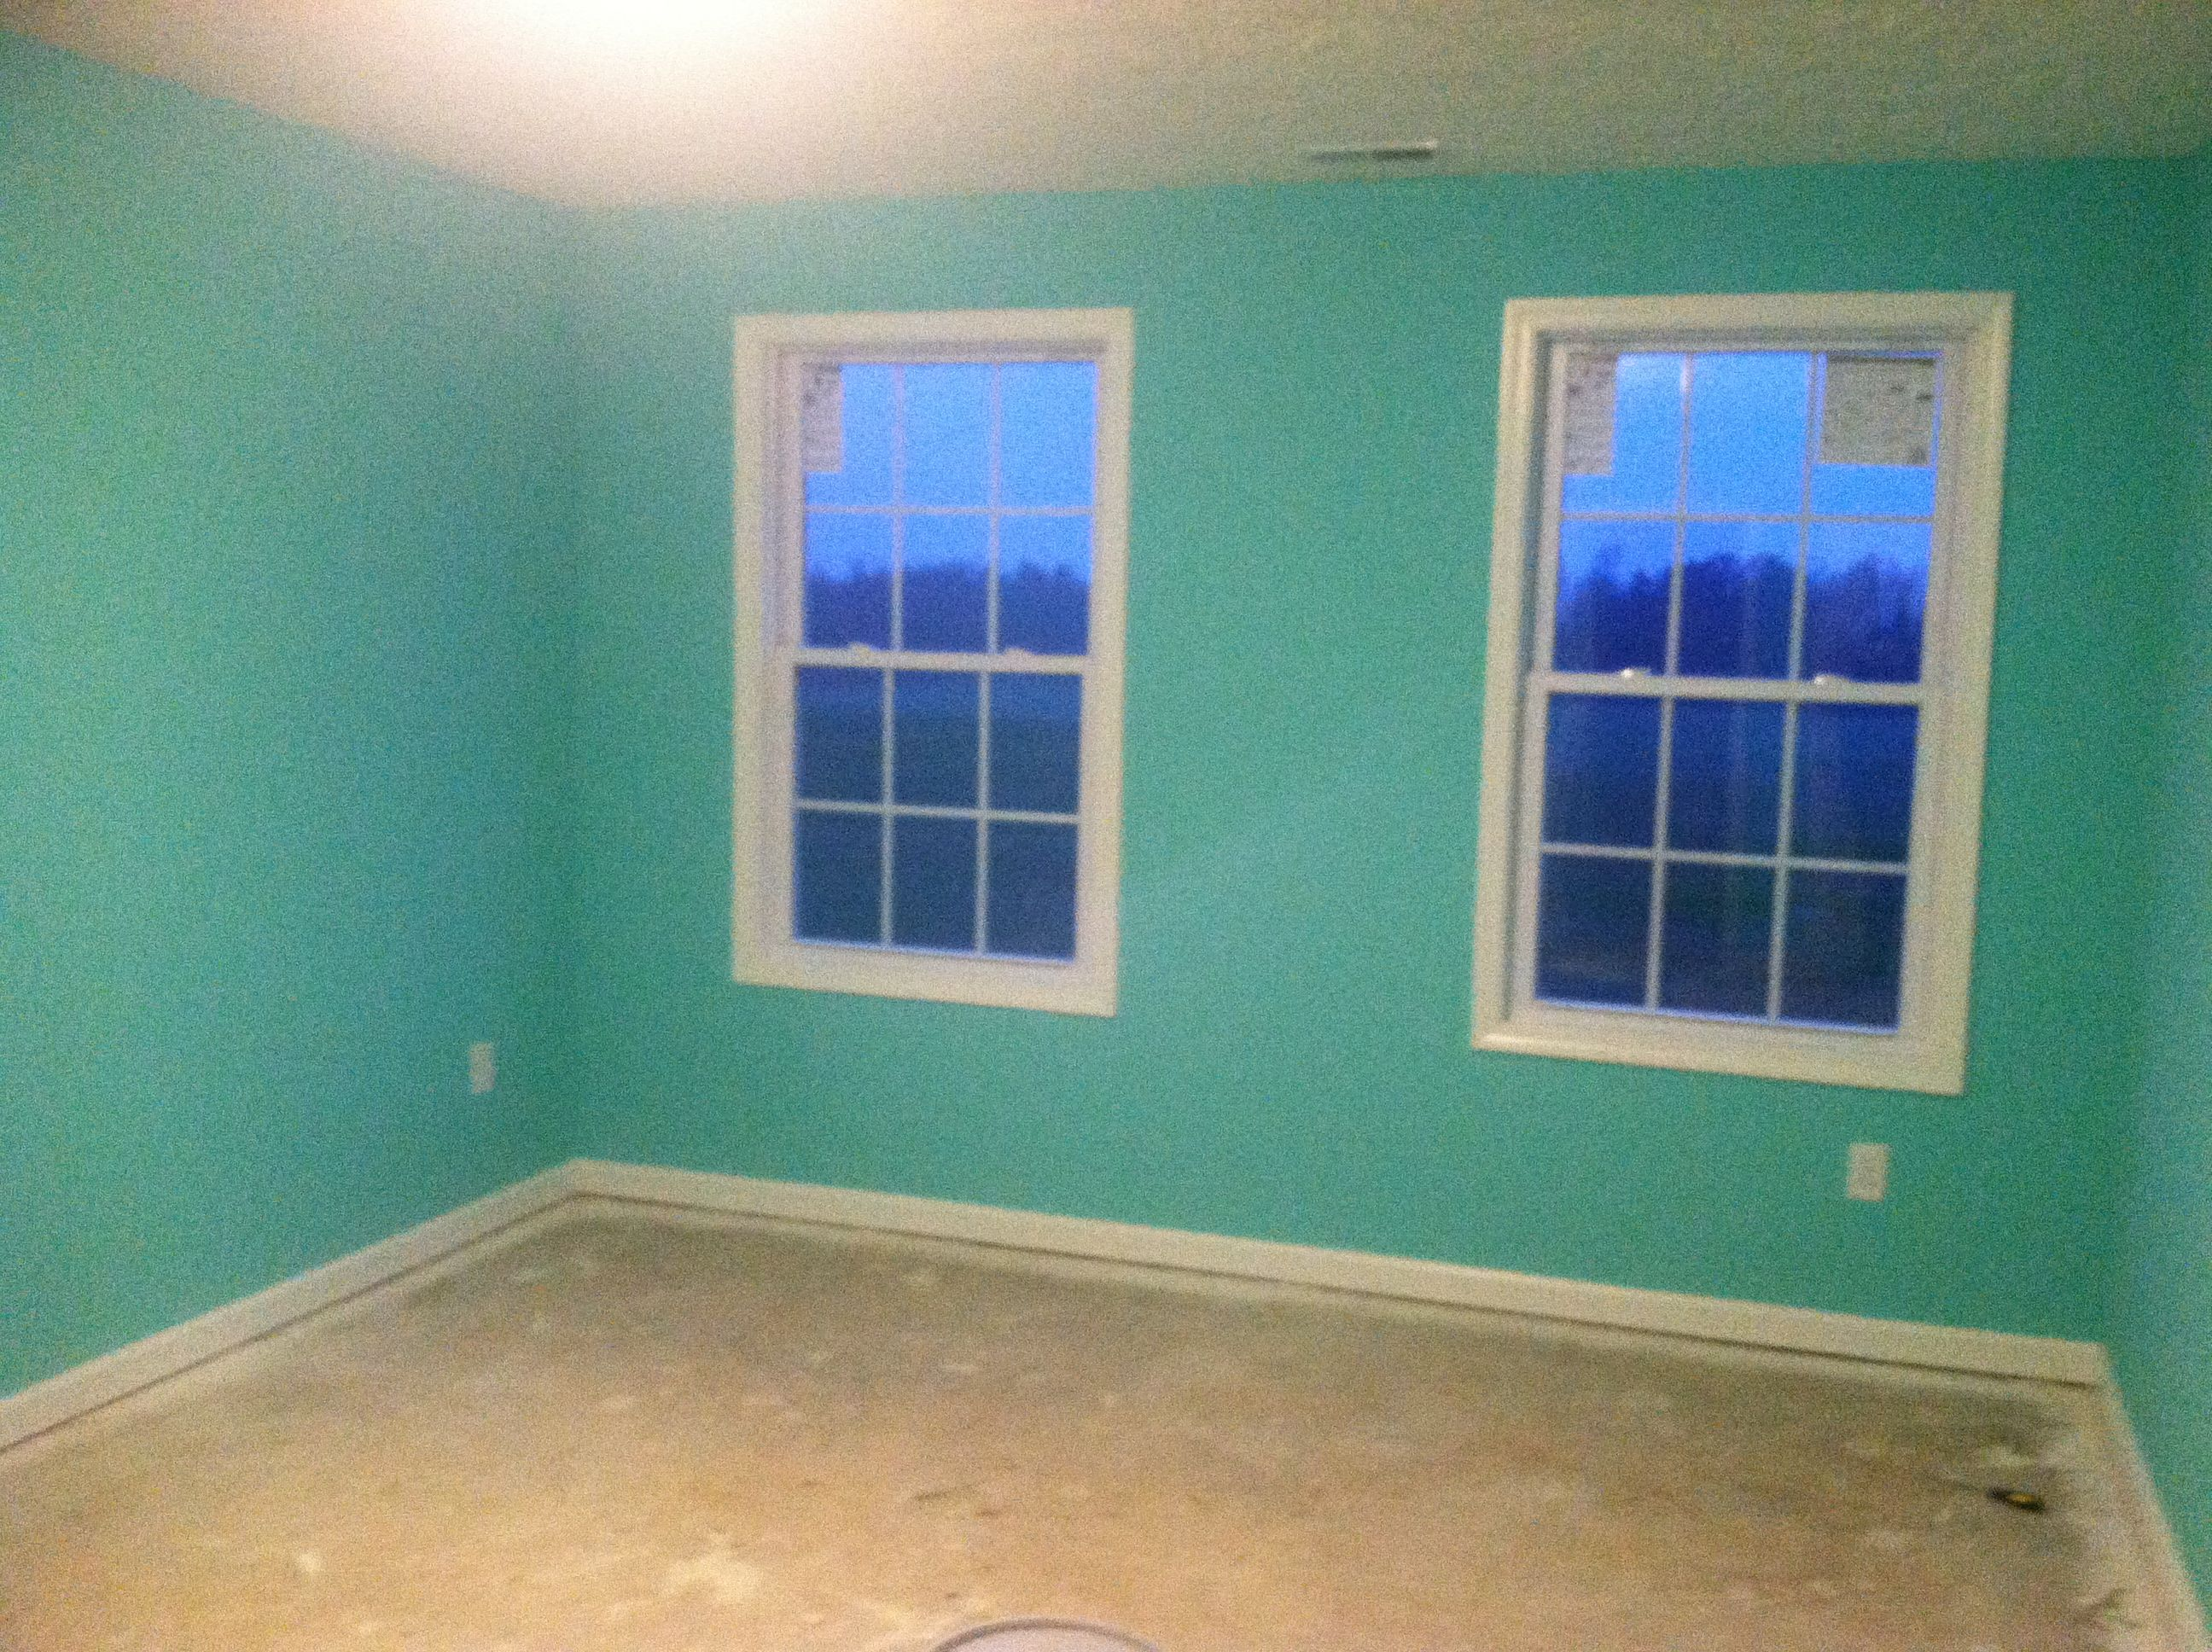 Teal Bedroom Paint Sherwin Williams Tantalizing Teal Perfect For A Pre Teen Bedroom